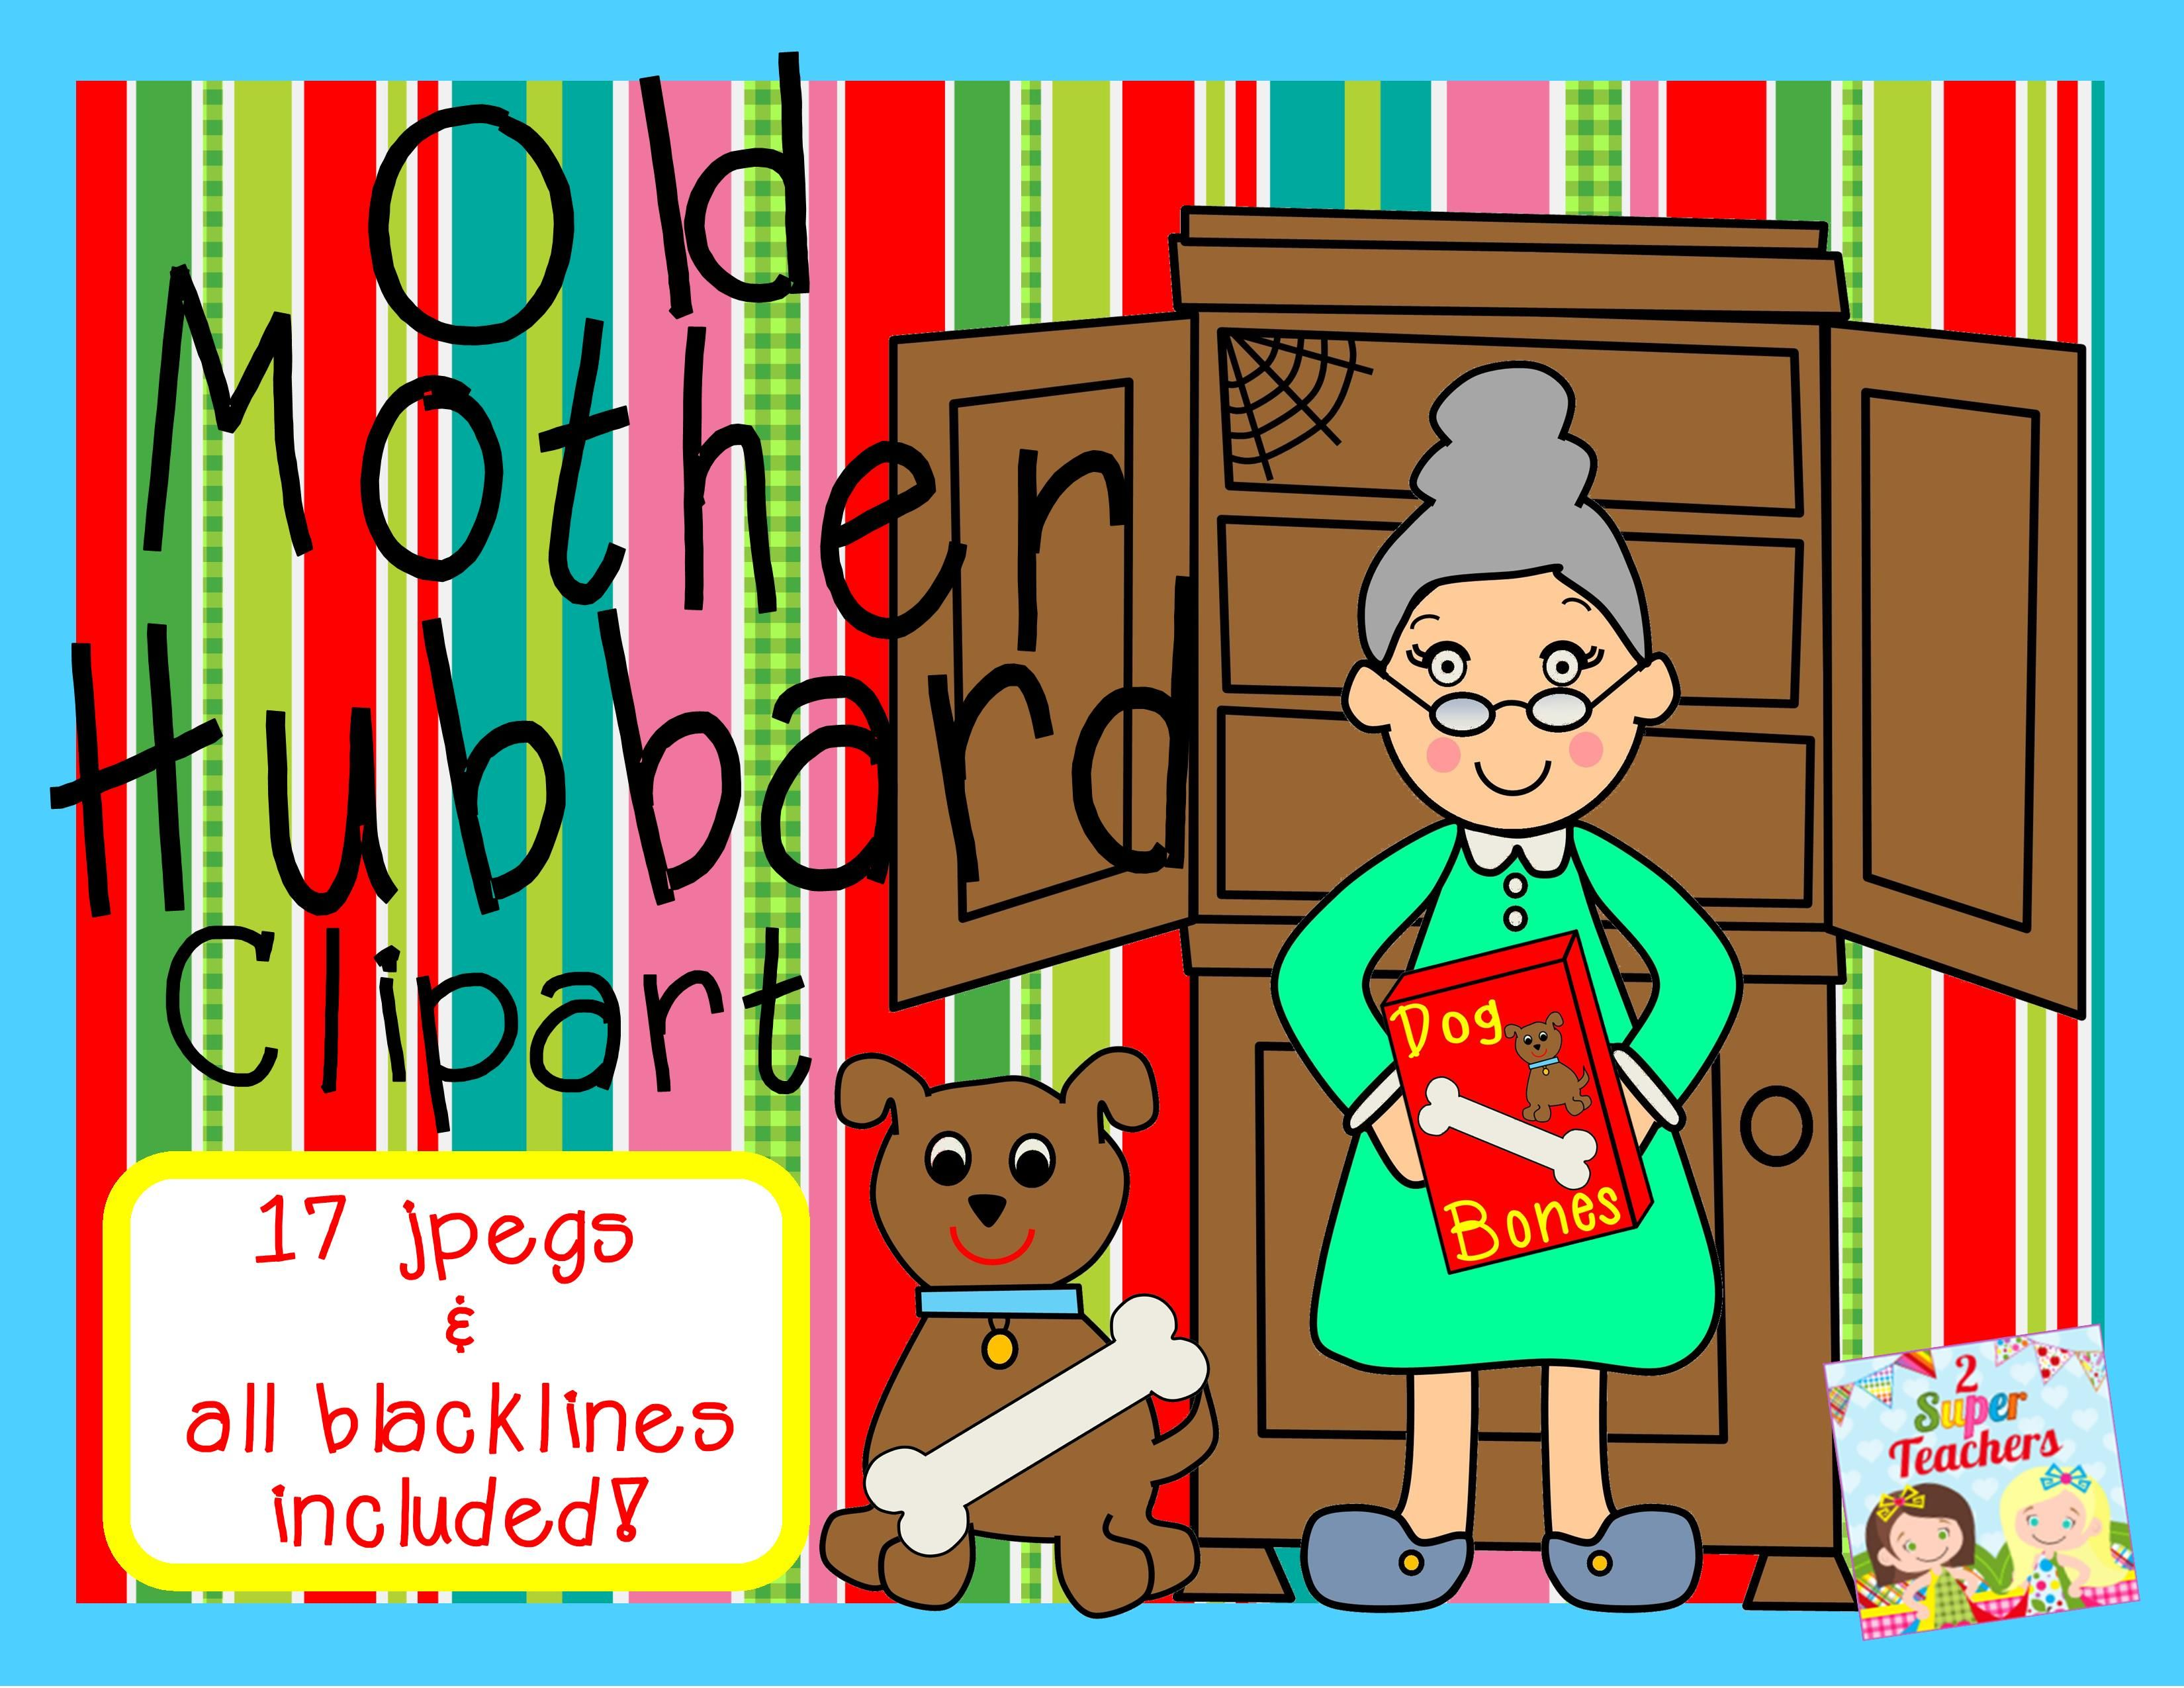 Old mother hubbard clipart banner free stock Old Mother Hubbard Clipart: 2 Super Teachers on TPT ... banner free stock